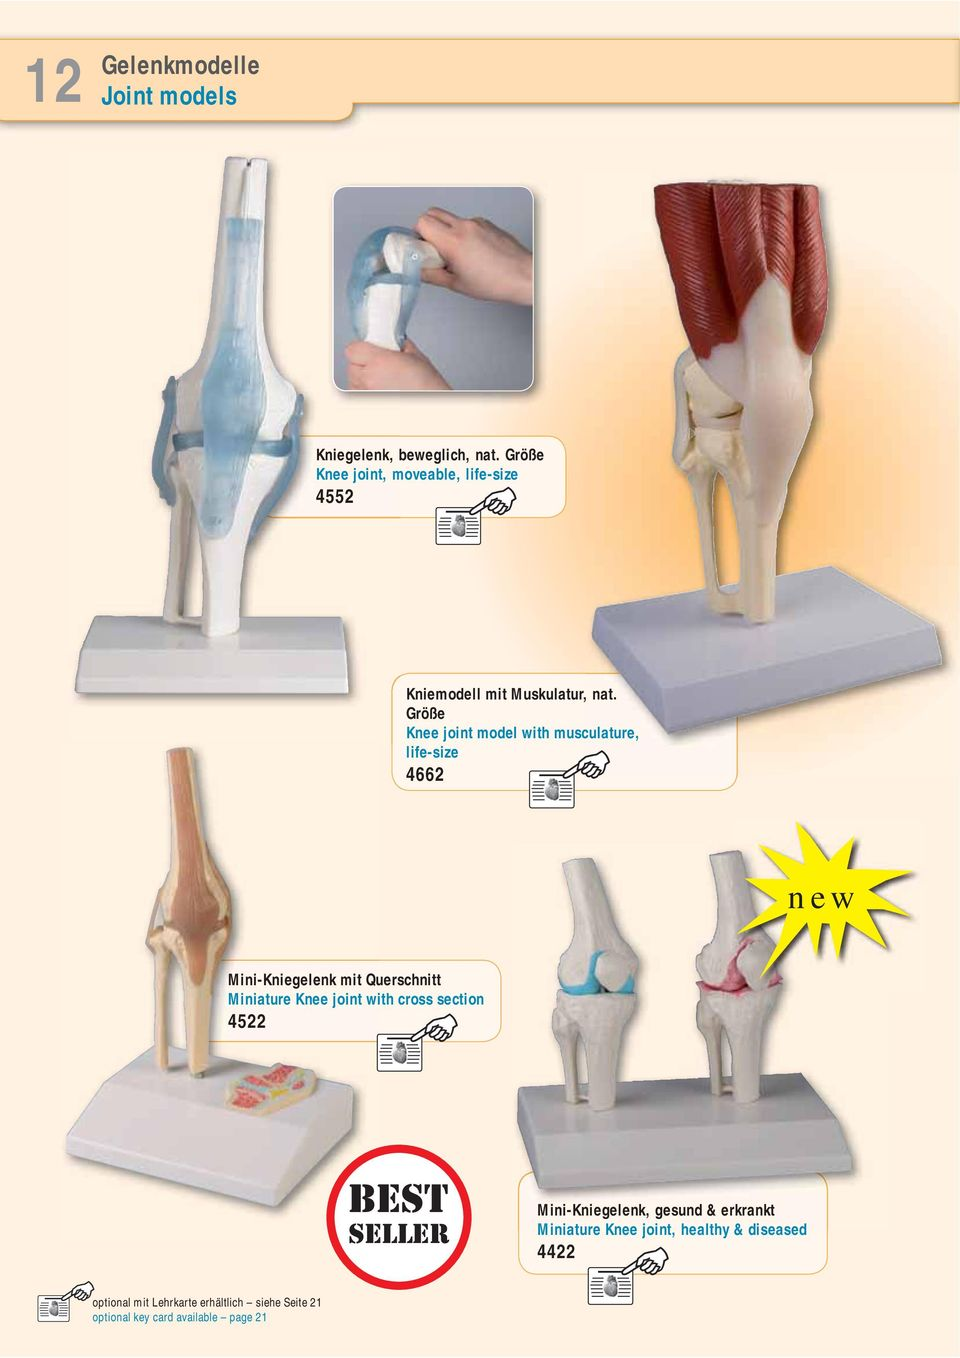 Größe Knee joint model with musculature, life-size 4662 new Mini-Kniegelenk mit Querschnitt Miniature Knee